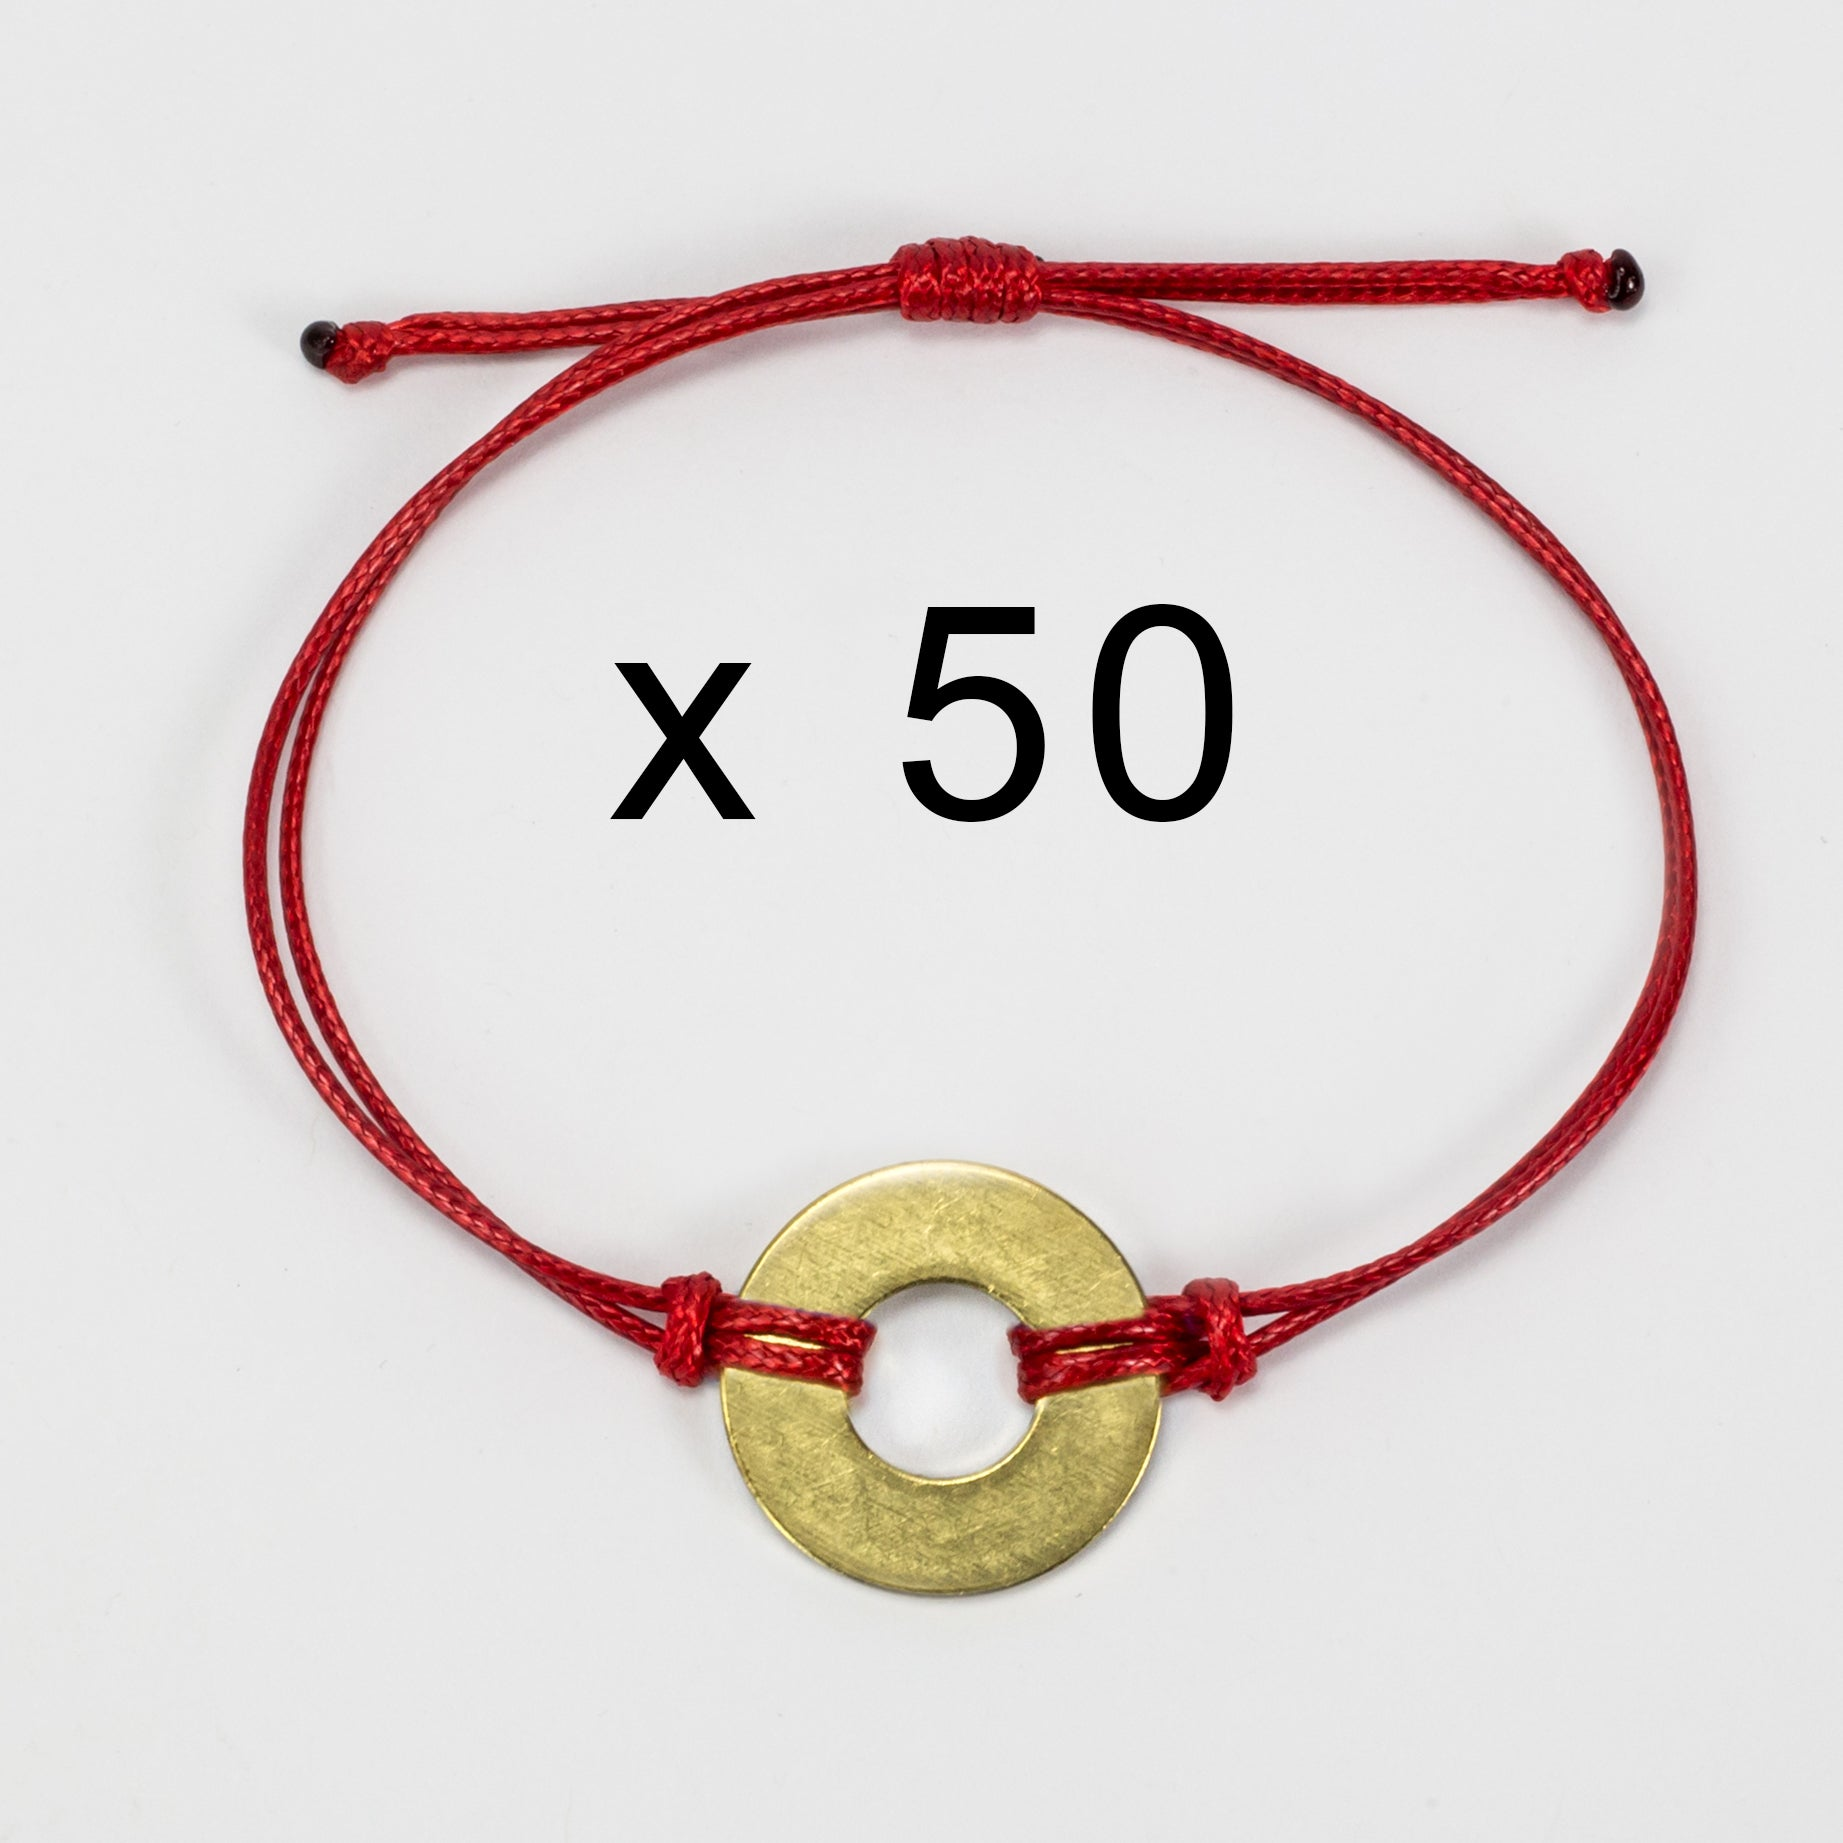 MyIntent Refill Classic Bracelets Red String set of 50 with Brass tokens